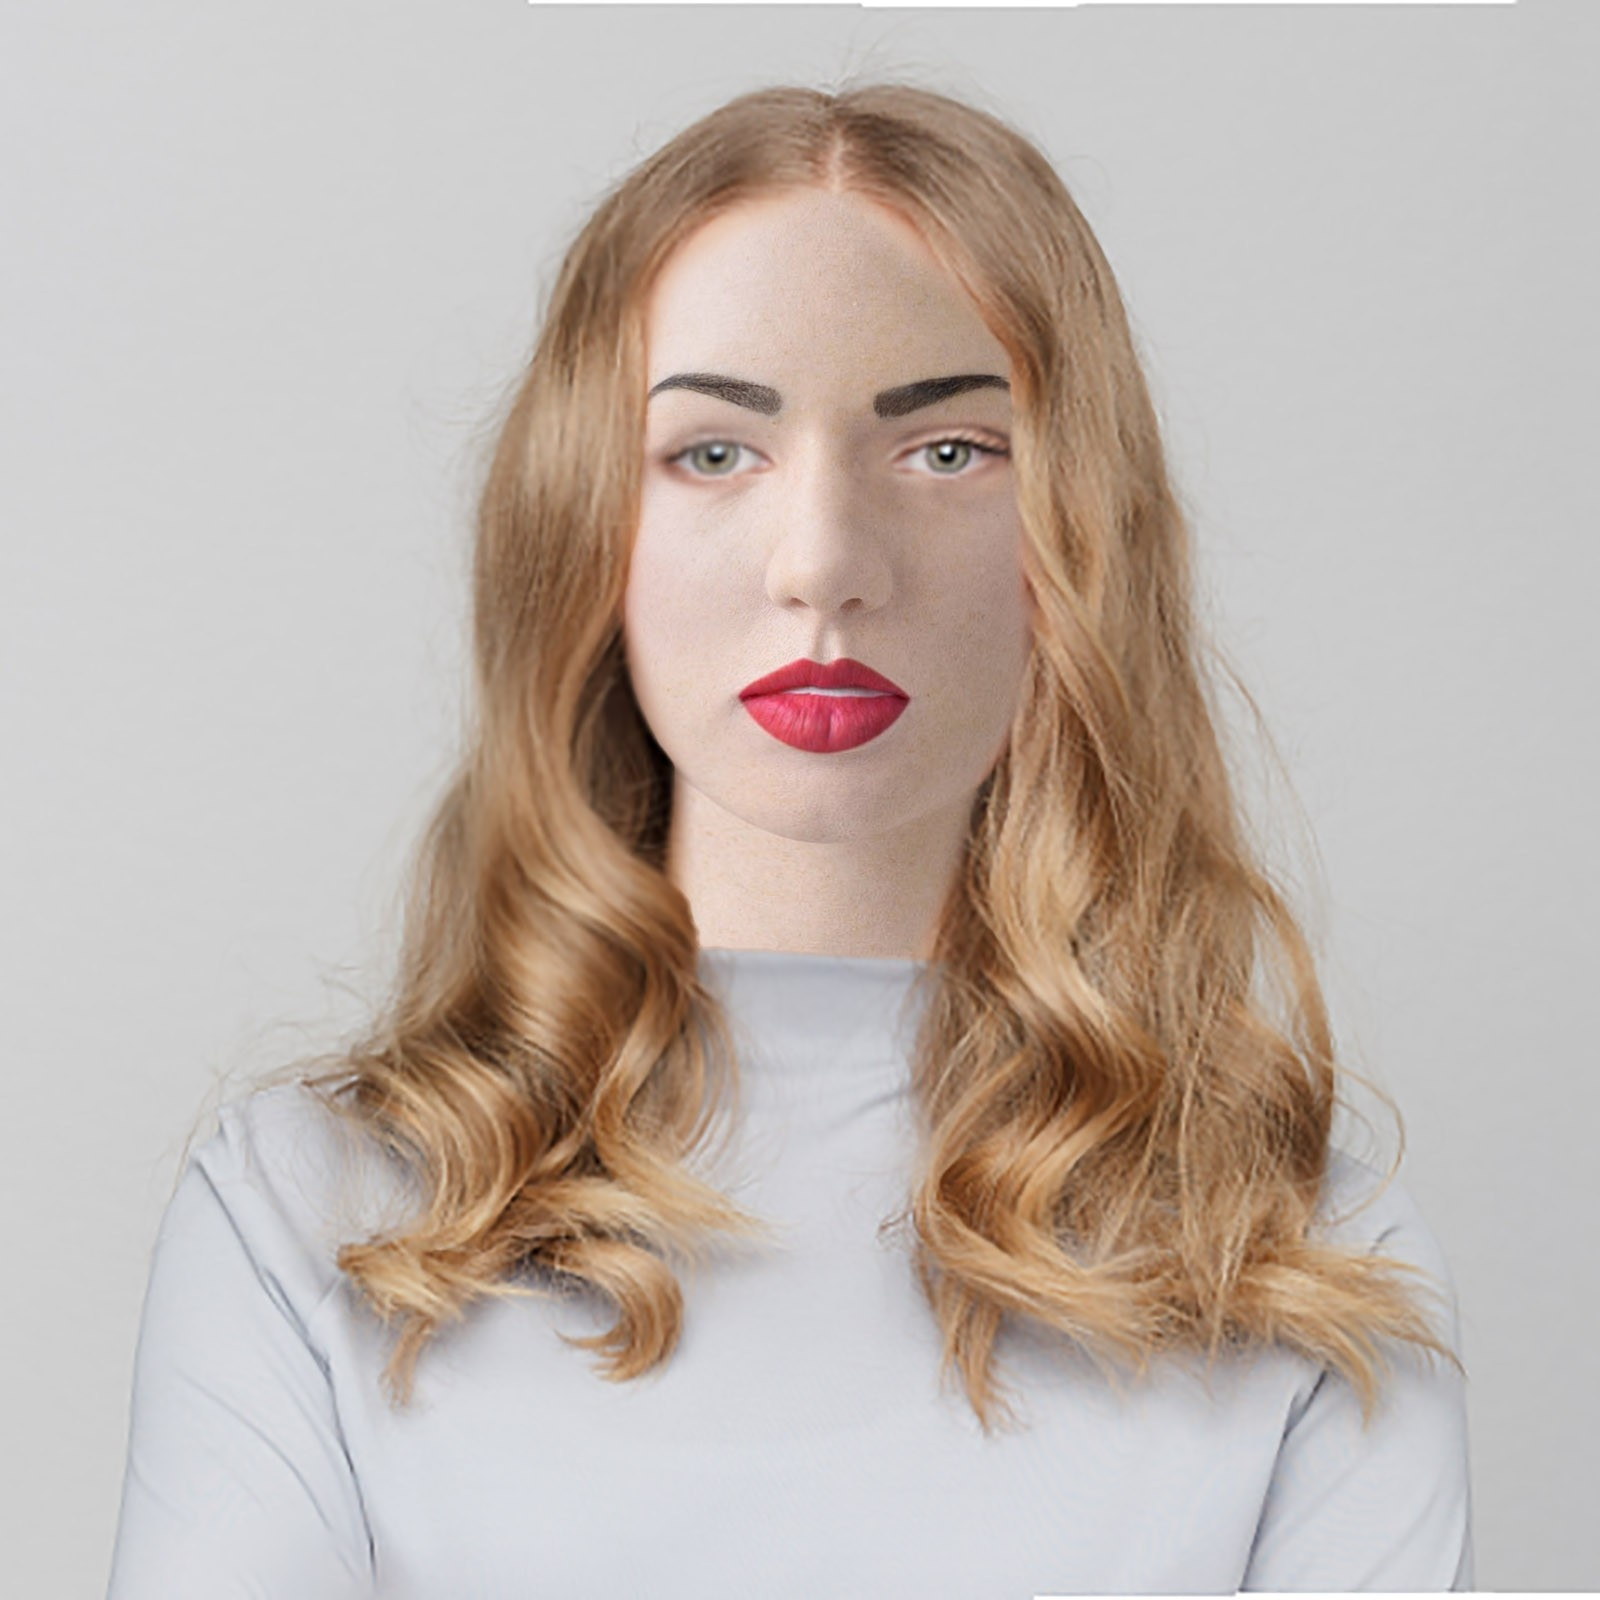 Full Latex Mask For Halloween Cosplay With Neck Full Head Creepy Wrinkle Women Face Mask Latex Mask Cosplay Party Props Masks недорого